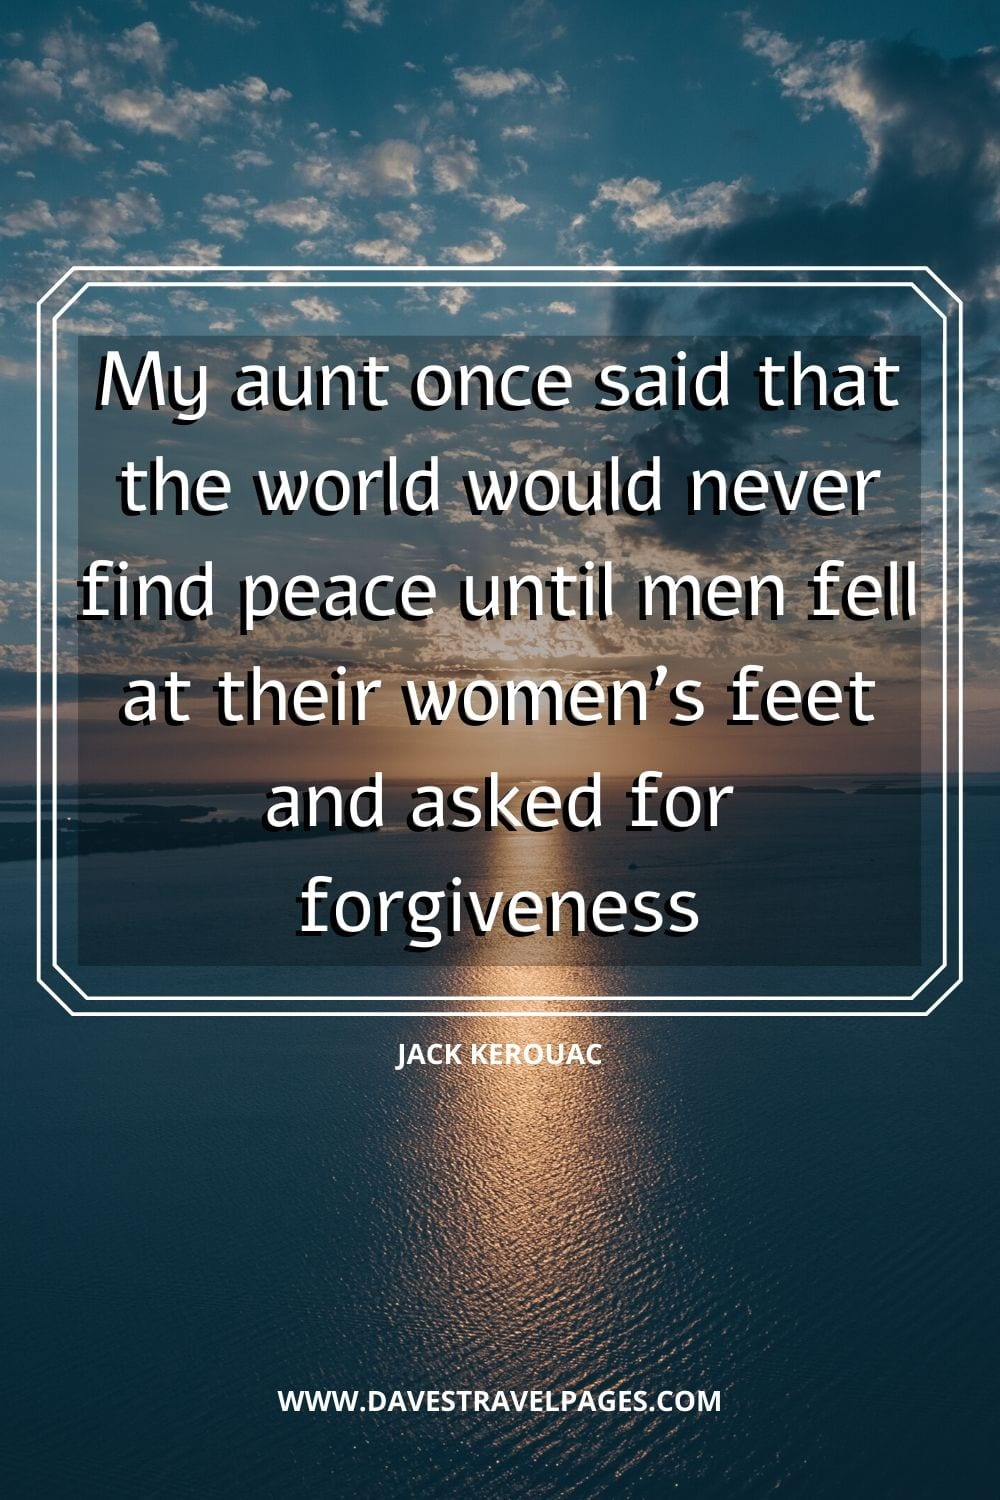 """My aunt once said that the world would never find peace until men fell at their women's feet and asked for forgiveness. "" - Jack Kerouac"